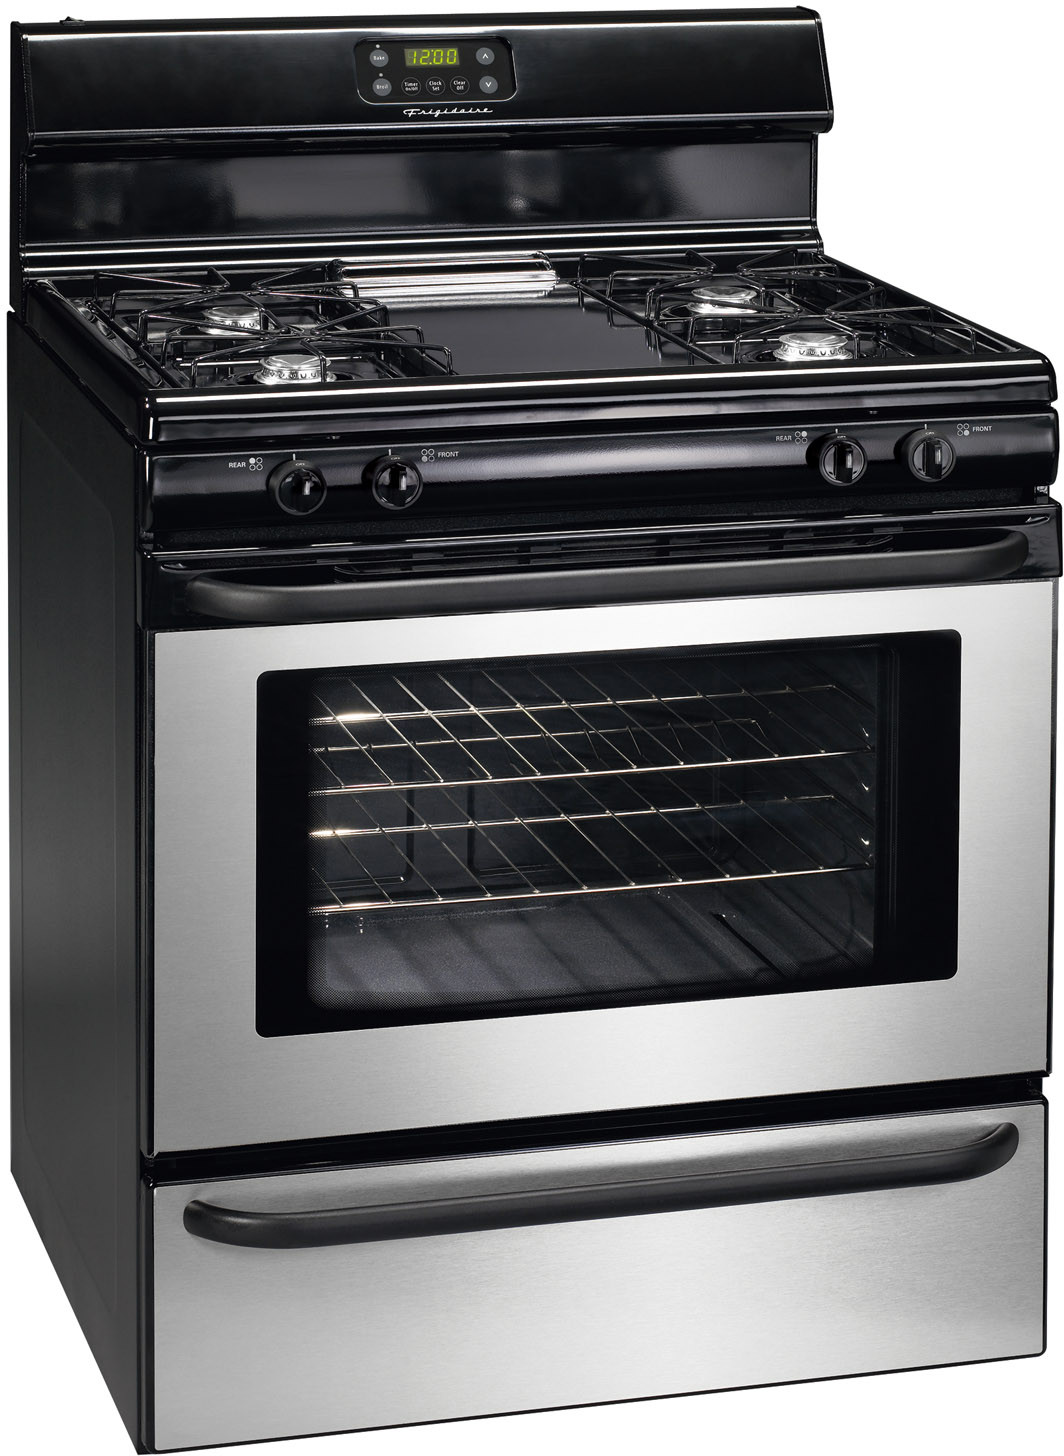 Pictures of black flat top stove appliances, big brother germany sex video